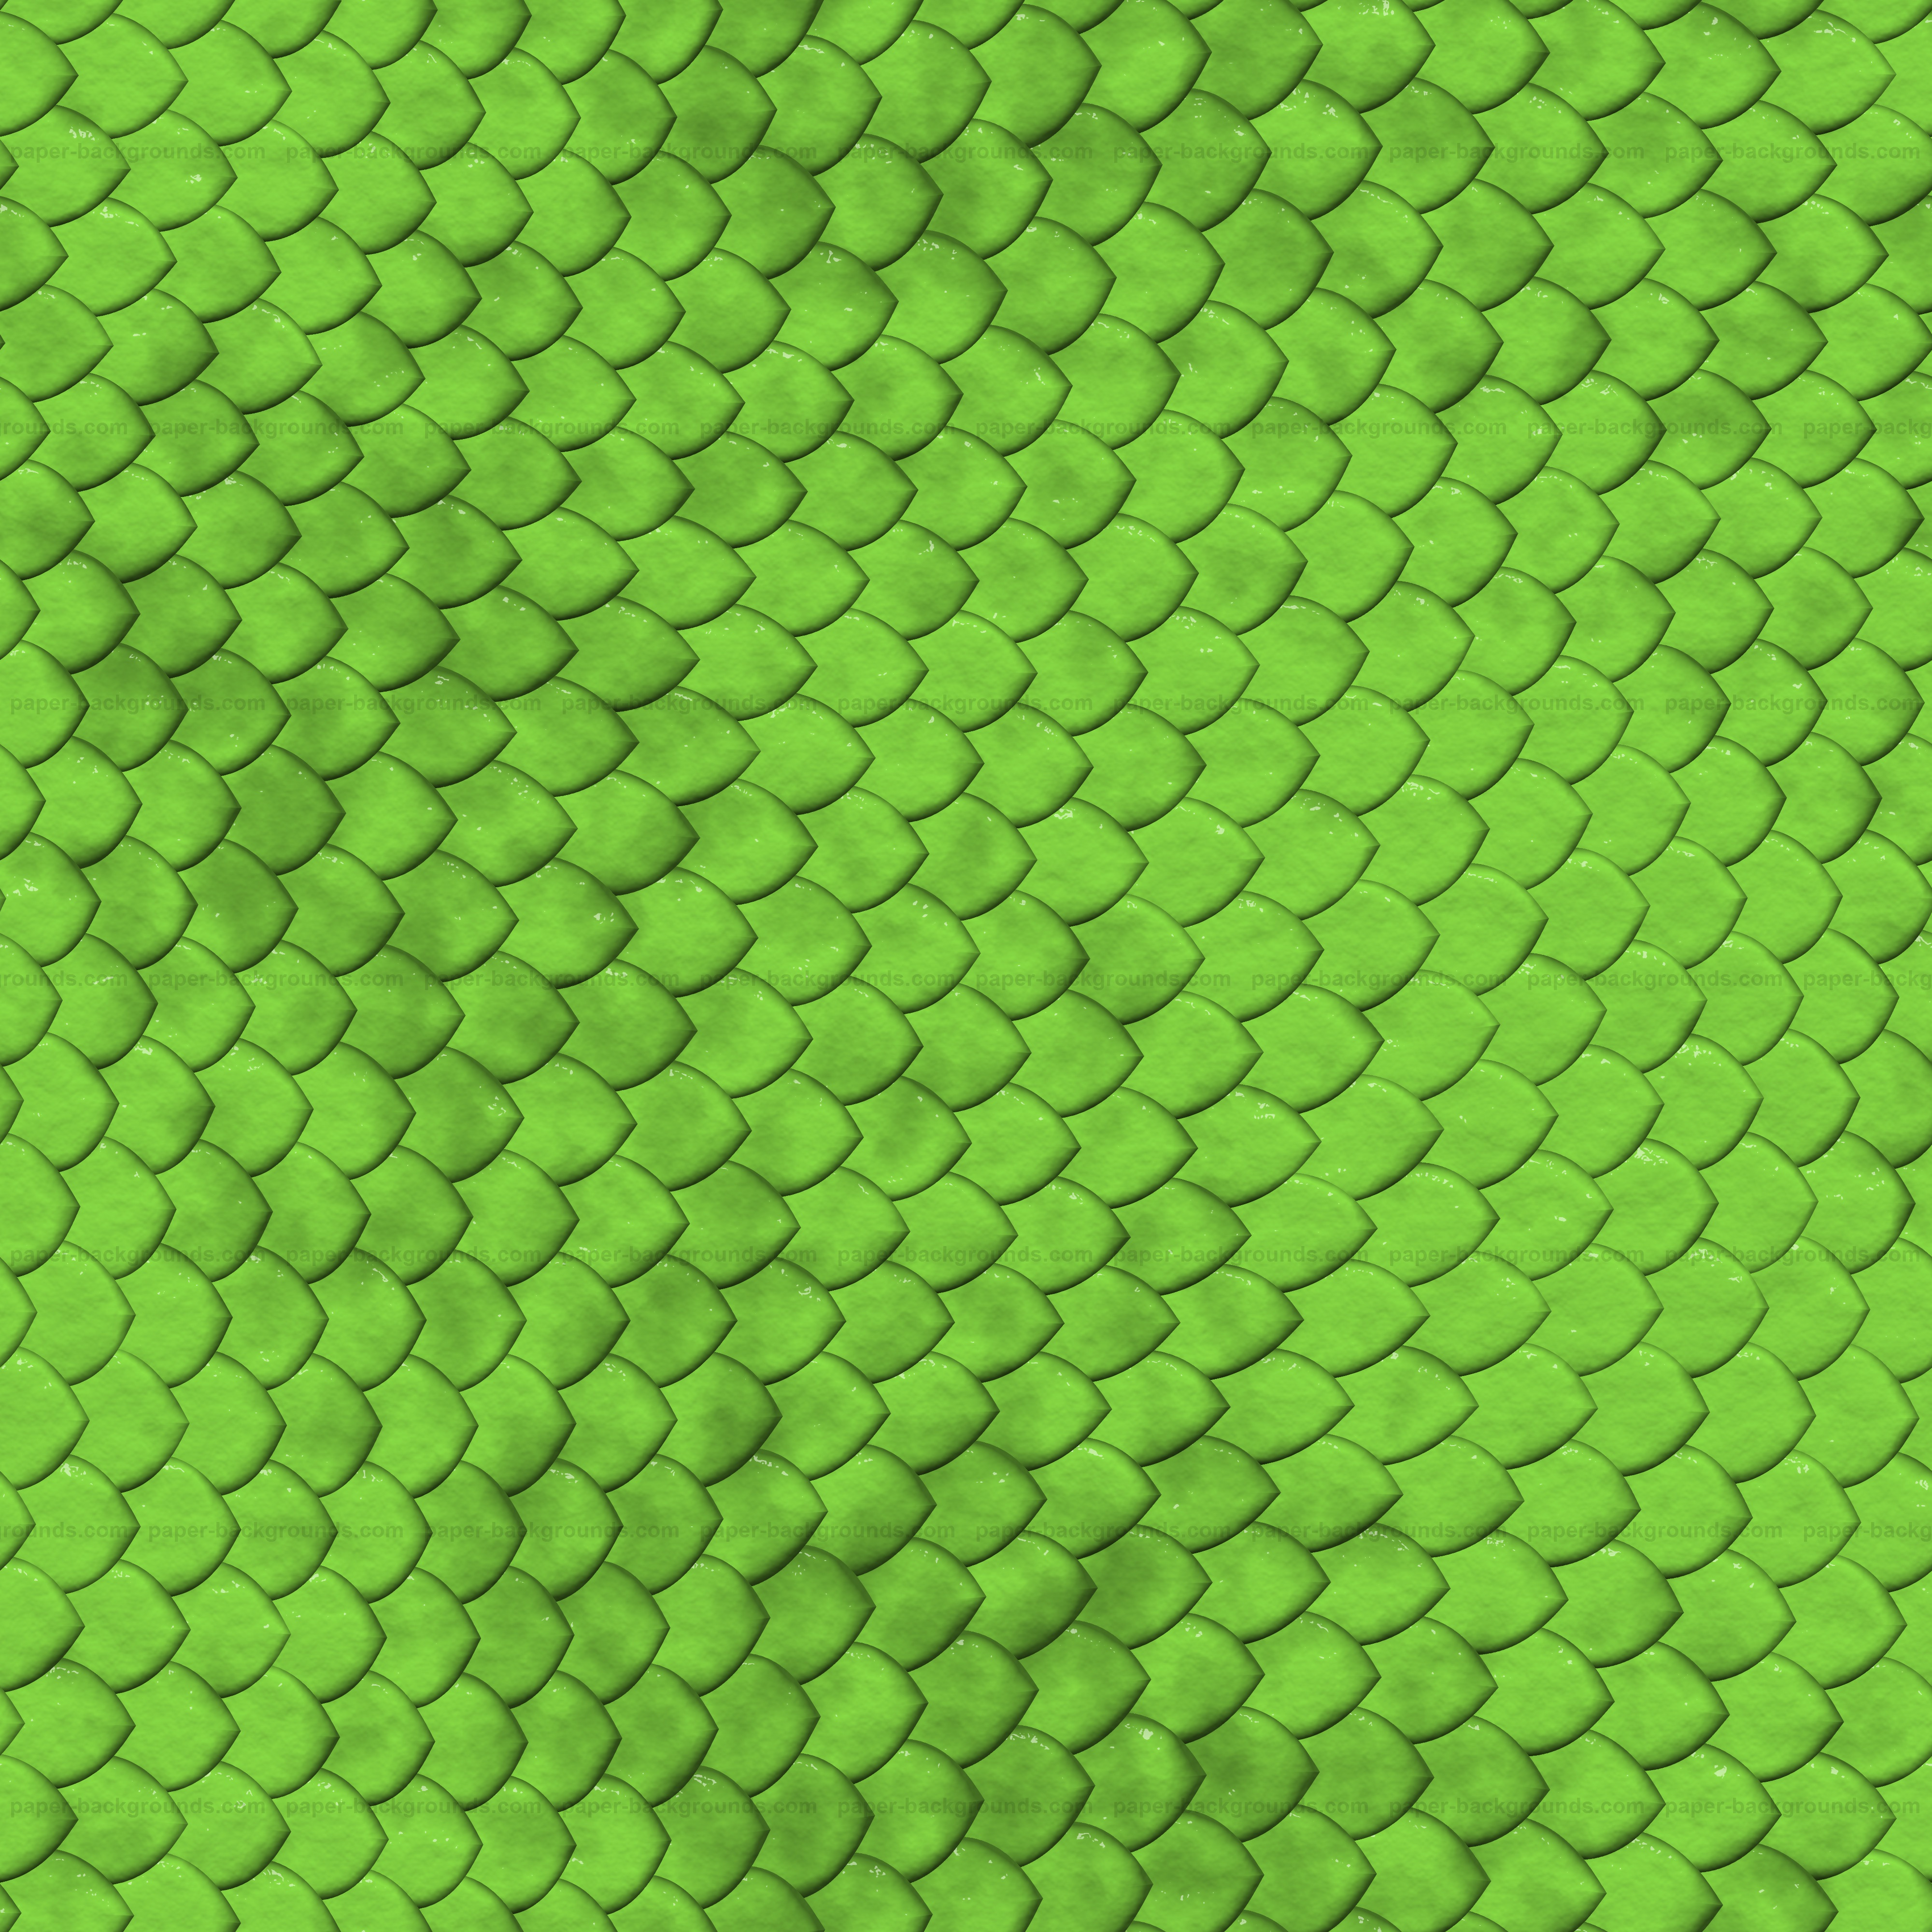 Snake Reptile Skin Texture 4000x4000